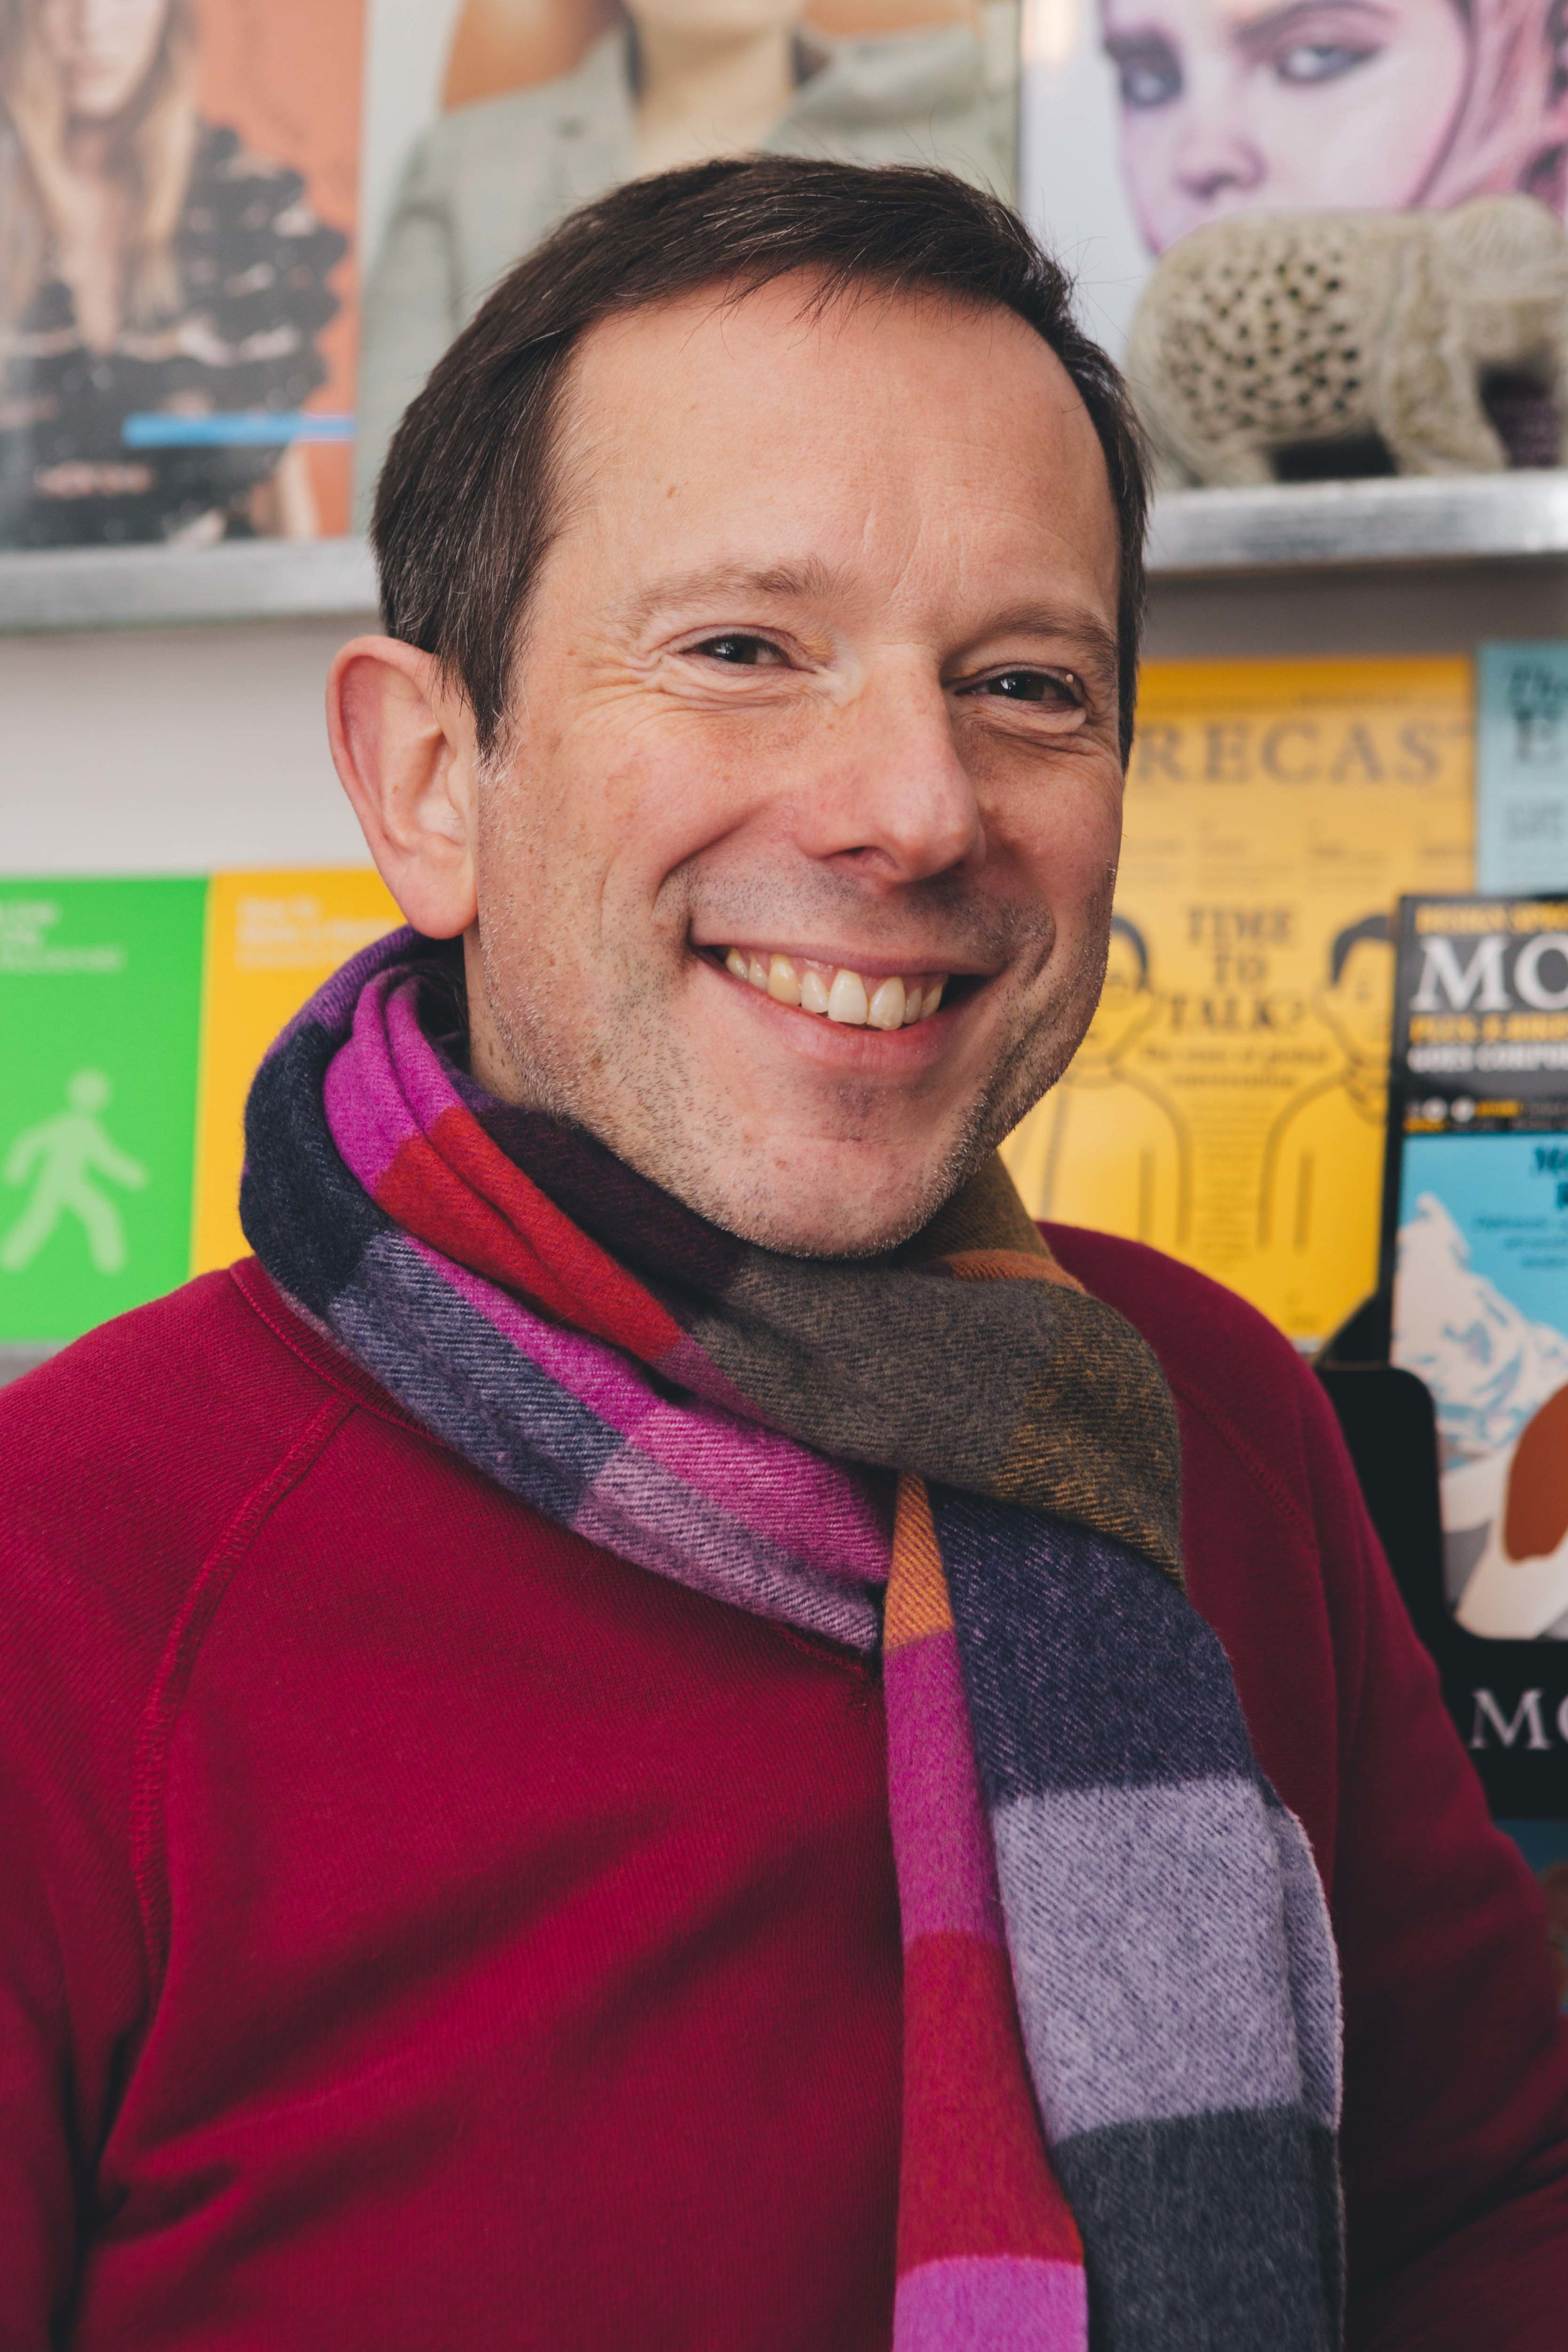 colour portrait image of a man in a red jumper with a striped scarf on smiling to camera, with shelves of books behind him